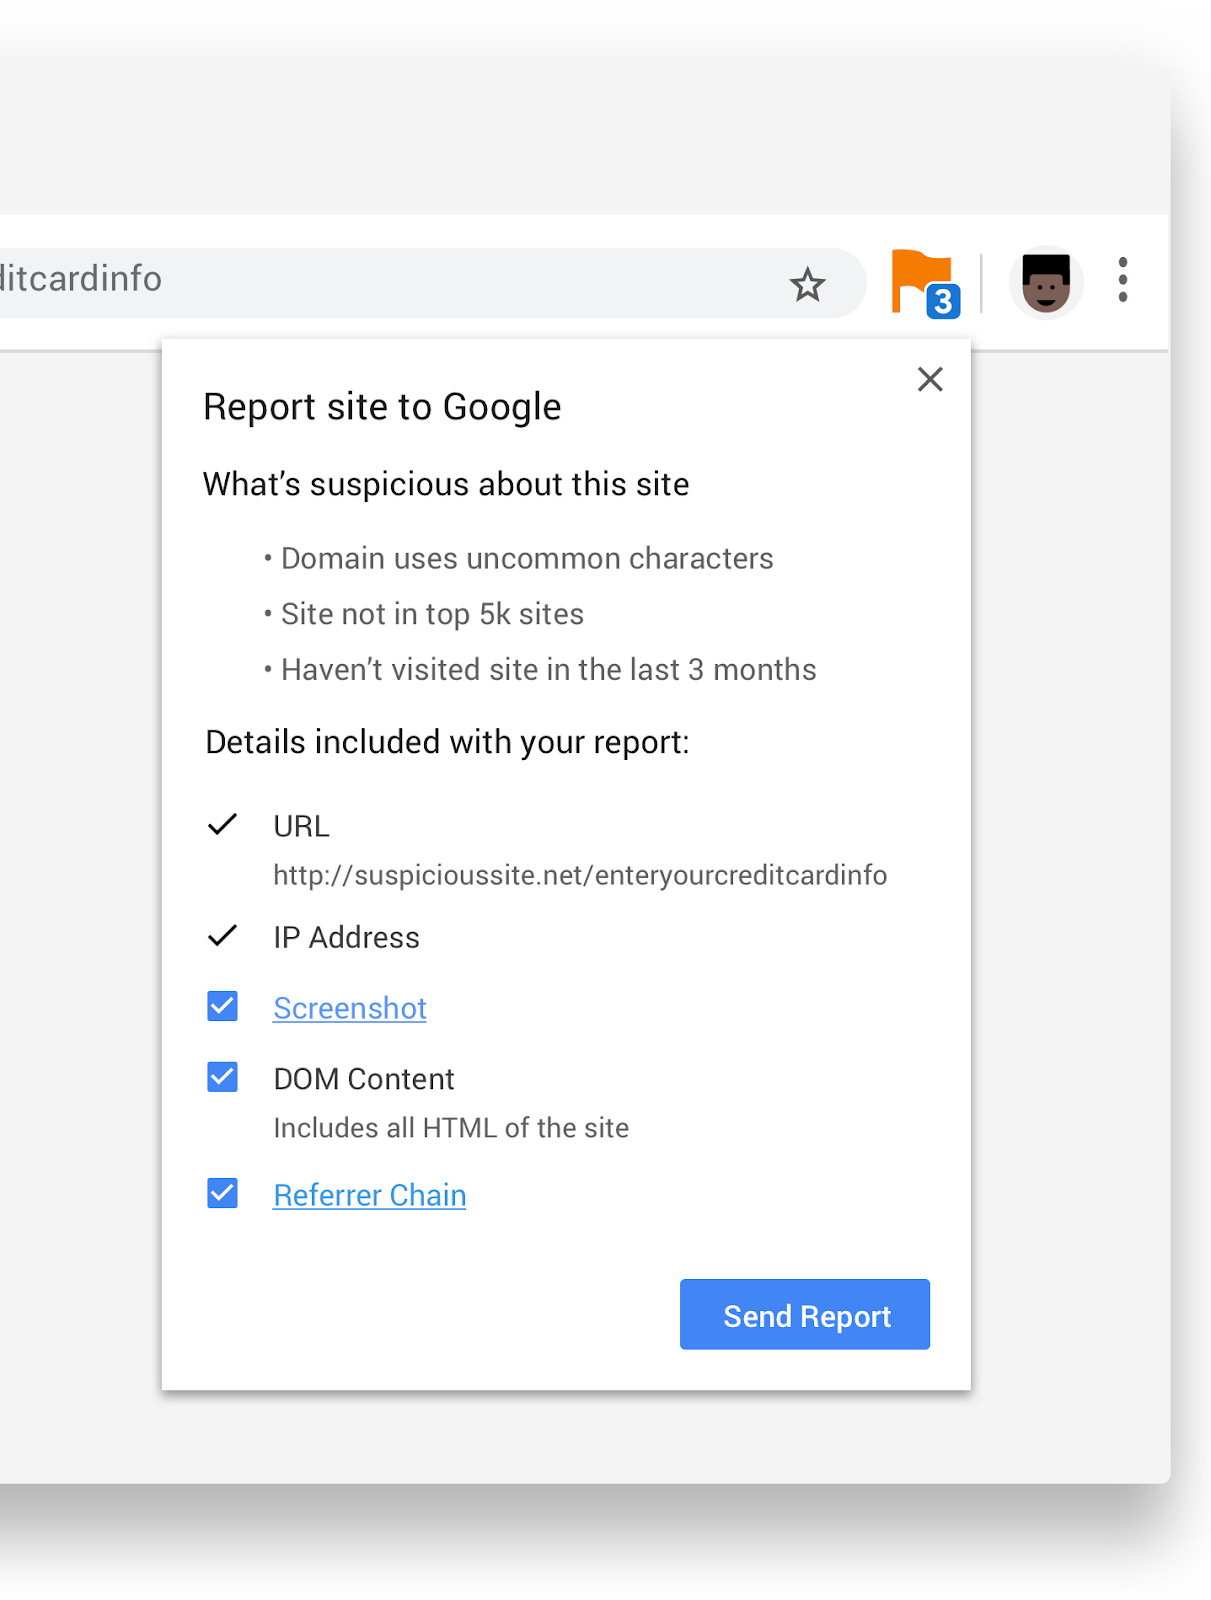 Google Online Security Blog: New Chrome Protections from